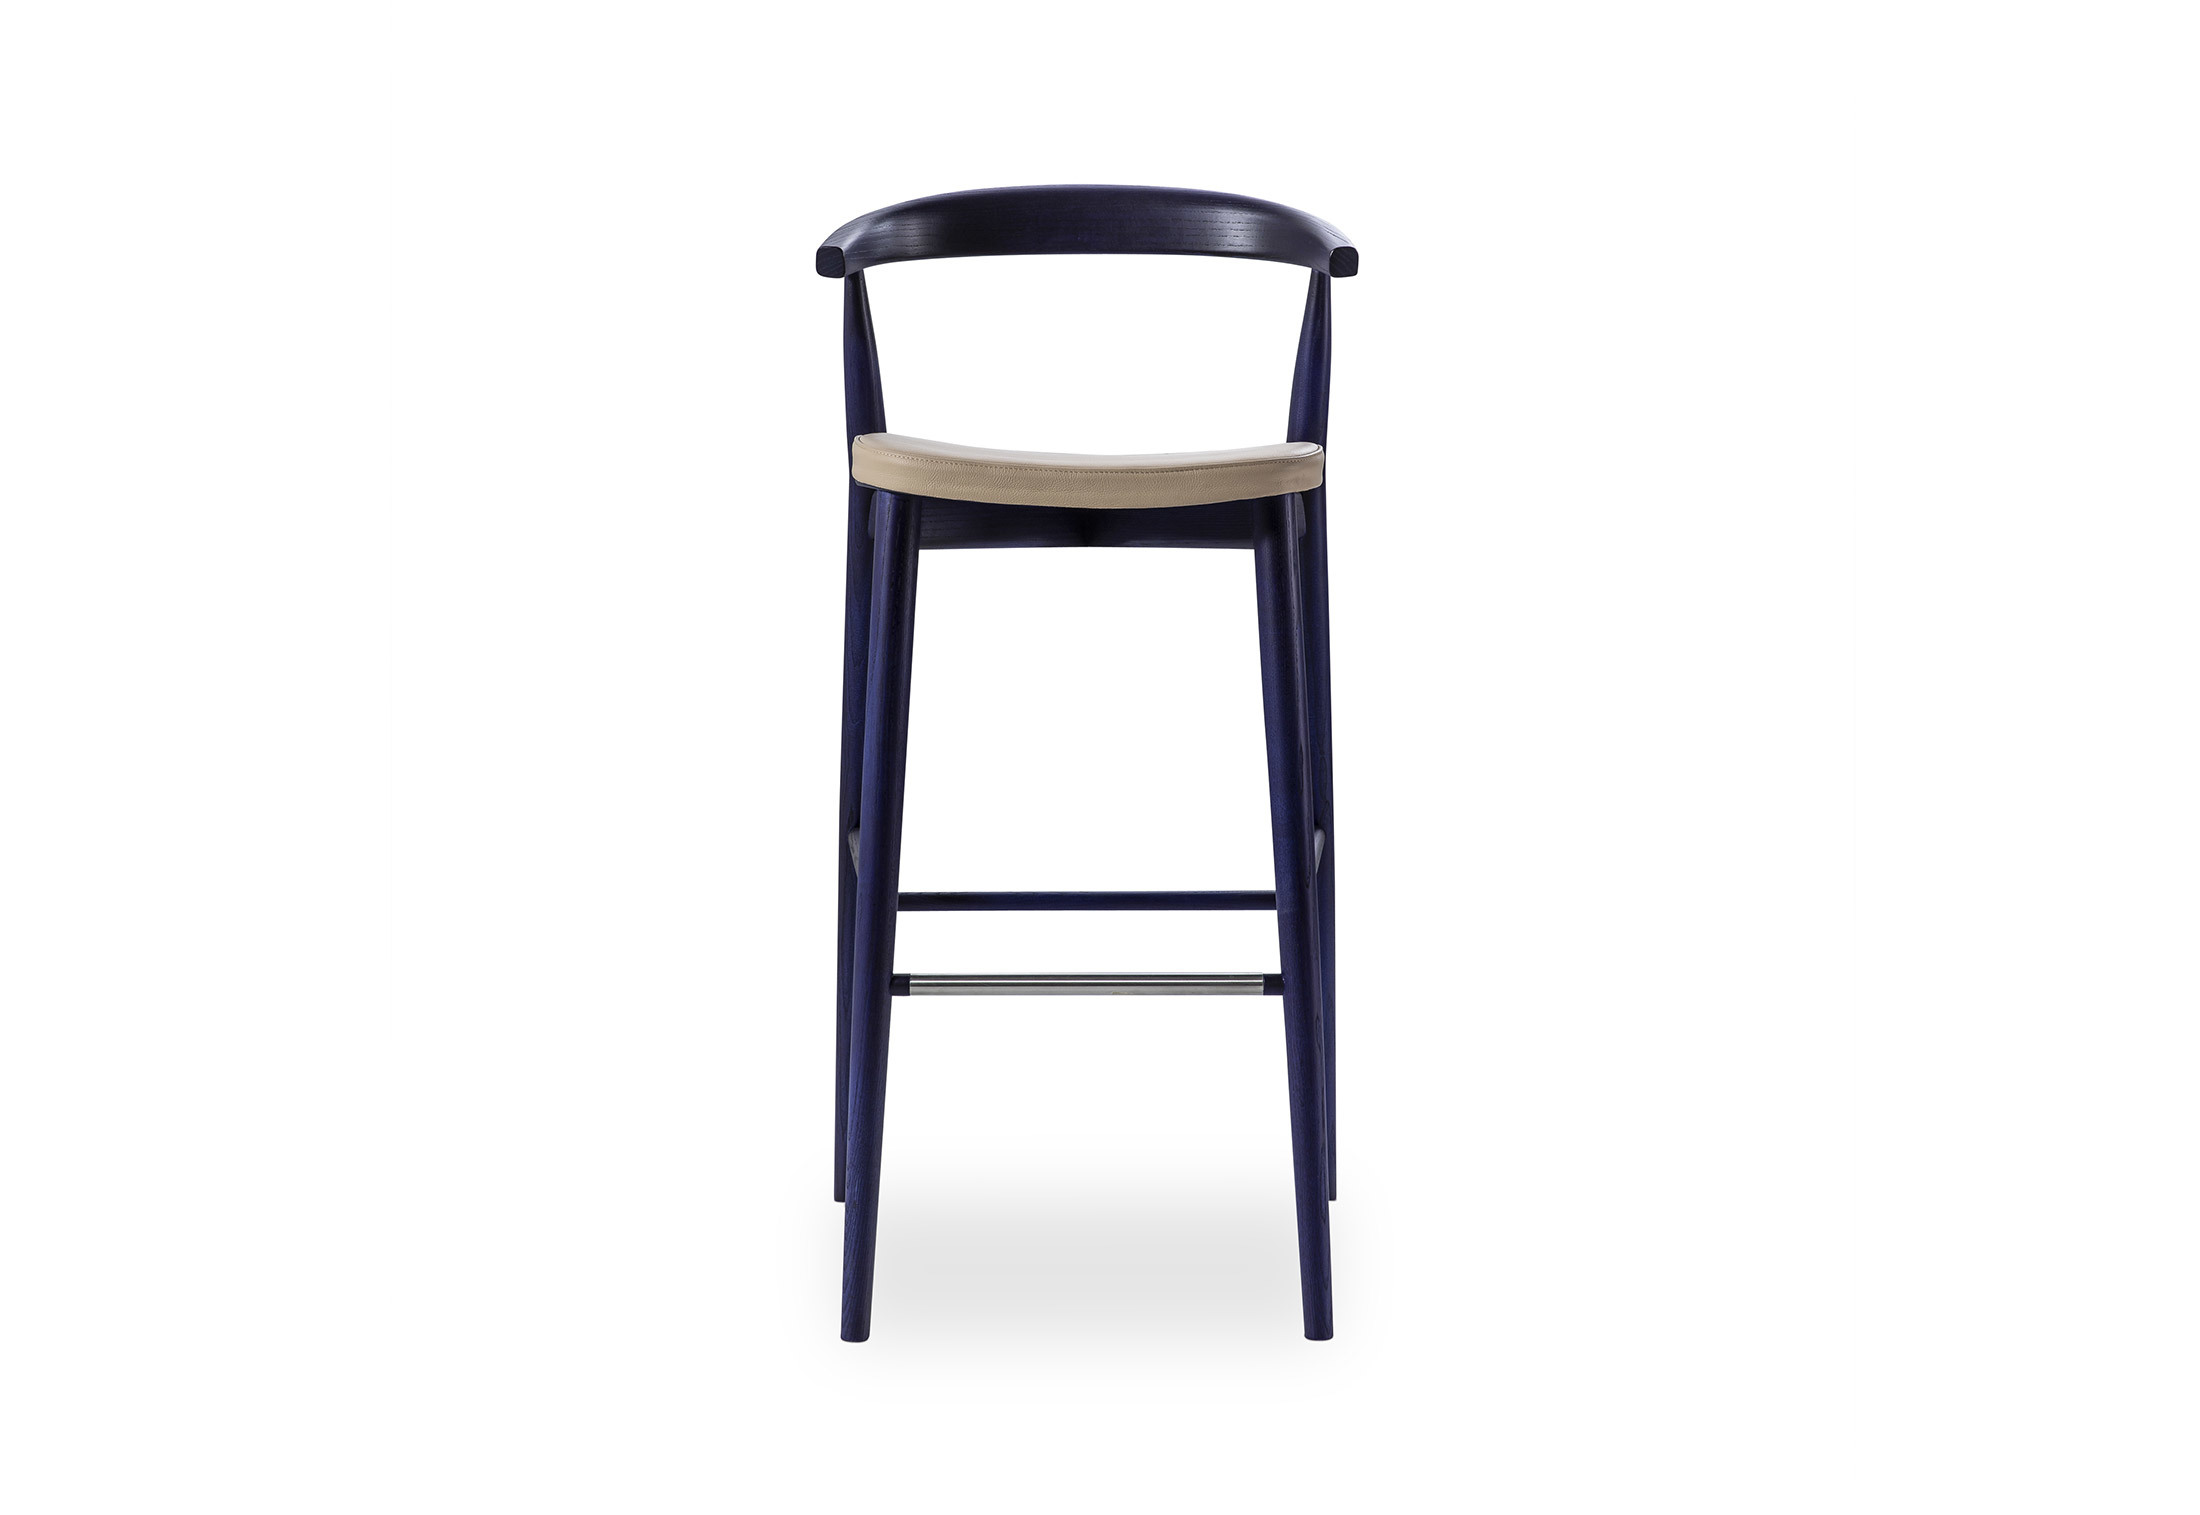 Awe Inspiring Newood Light Stool By Cappellini Stylepark Squirreltailoven Fun Painted Chair Ideas Images Squirreltailovenorg